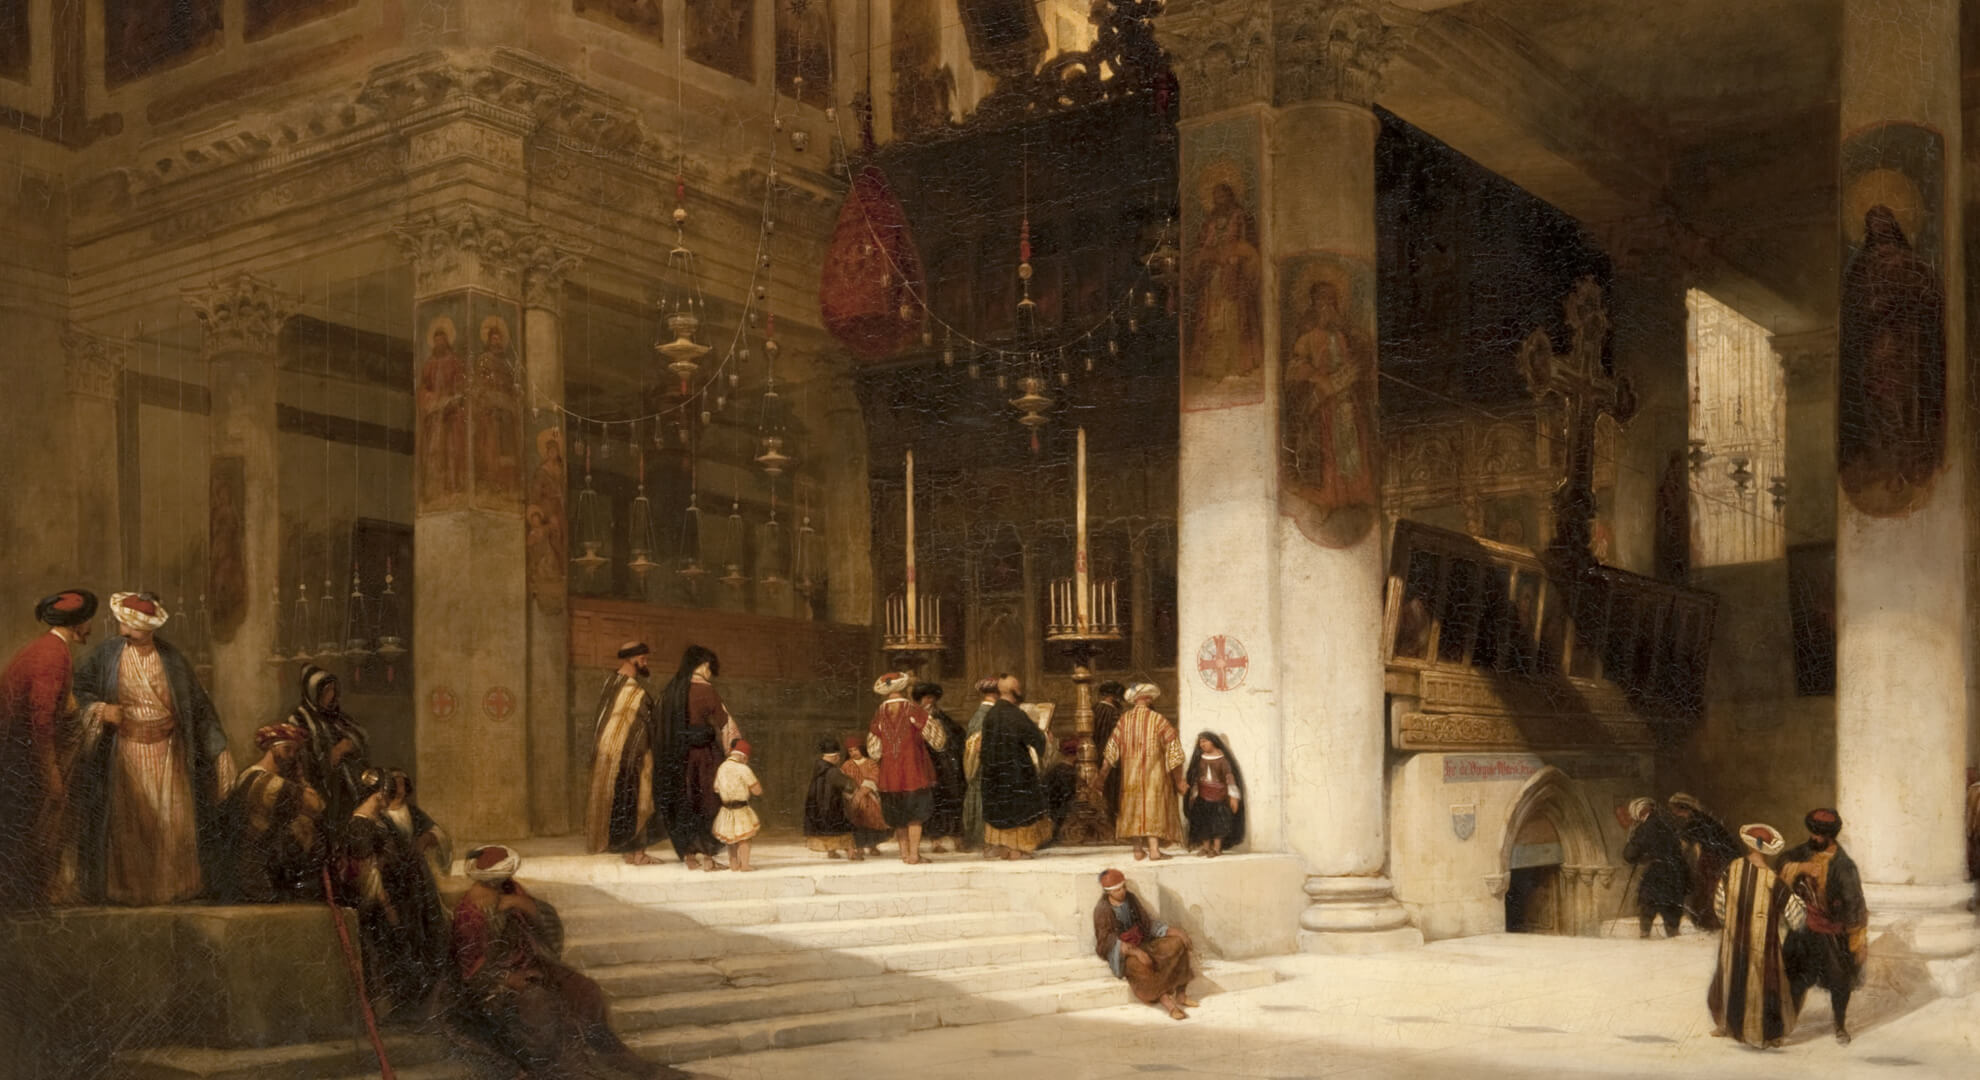 David Roberts (1796 – 1864), Church of the Nativity, circa mid 19th century, Oil on Canvas, Height 112 cm x Width 142 cm, Paisley Museum and Art Gallery